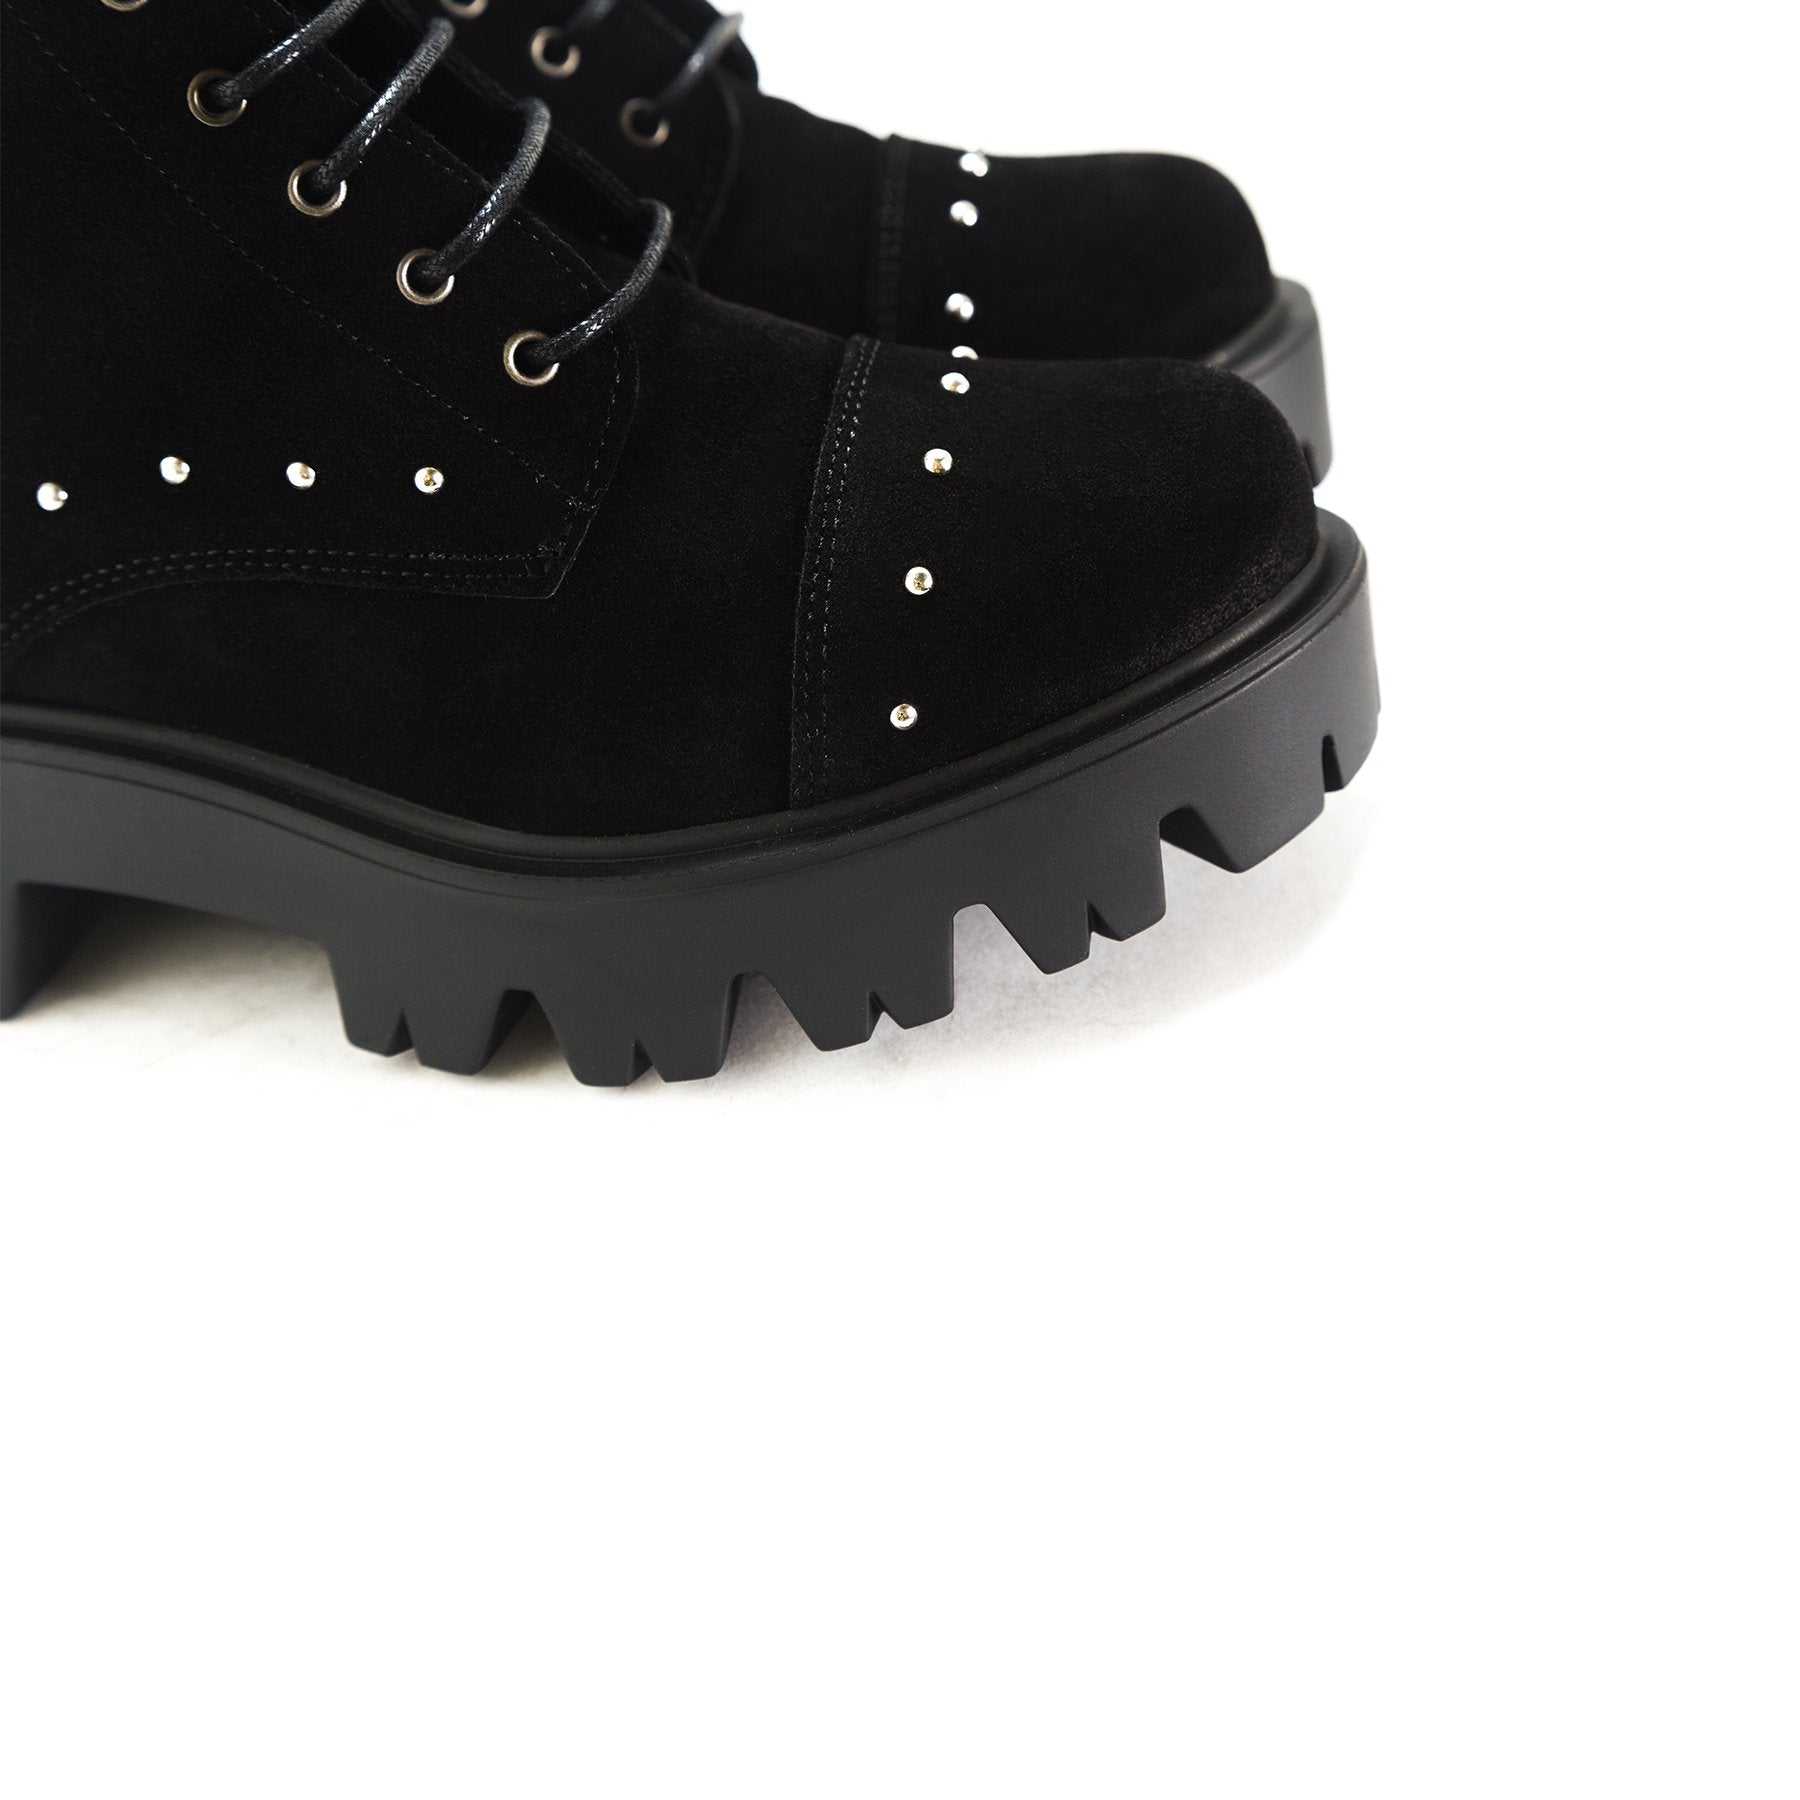 Punk Black Suede